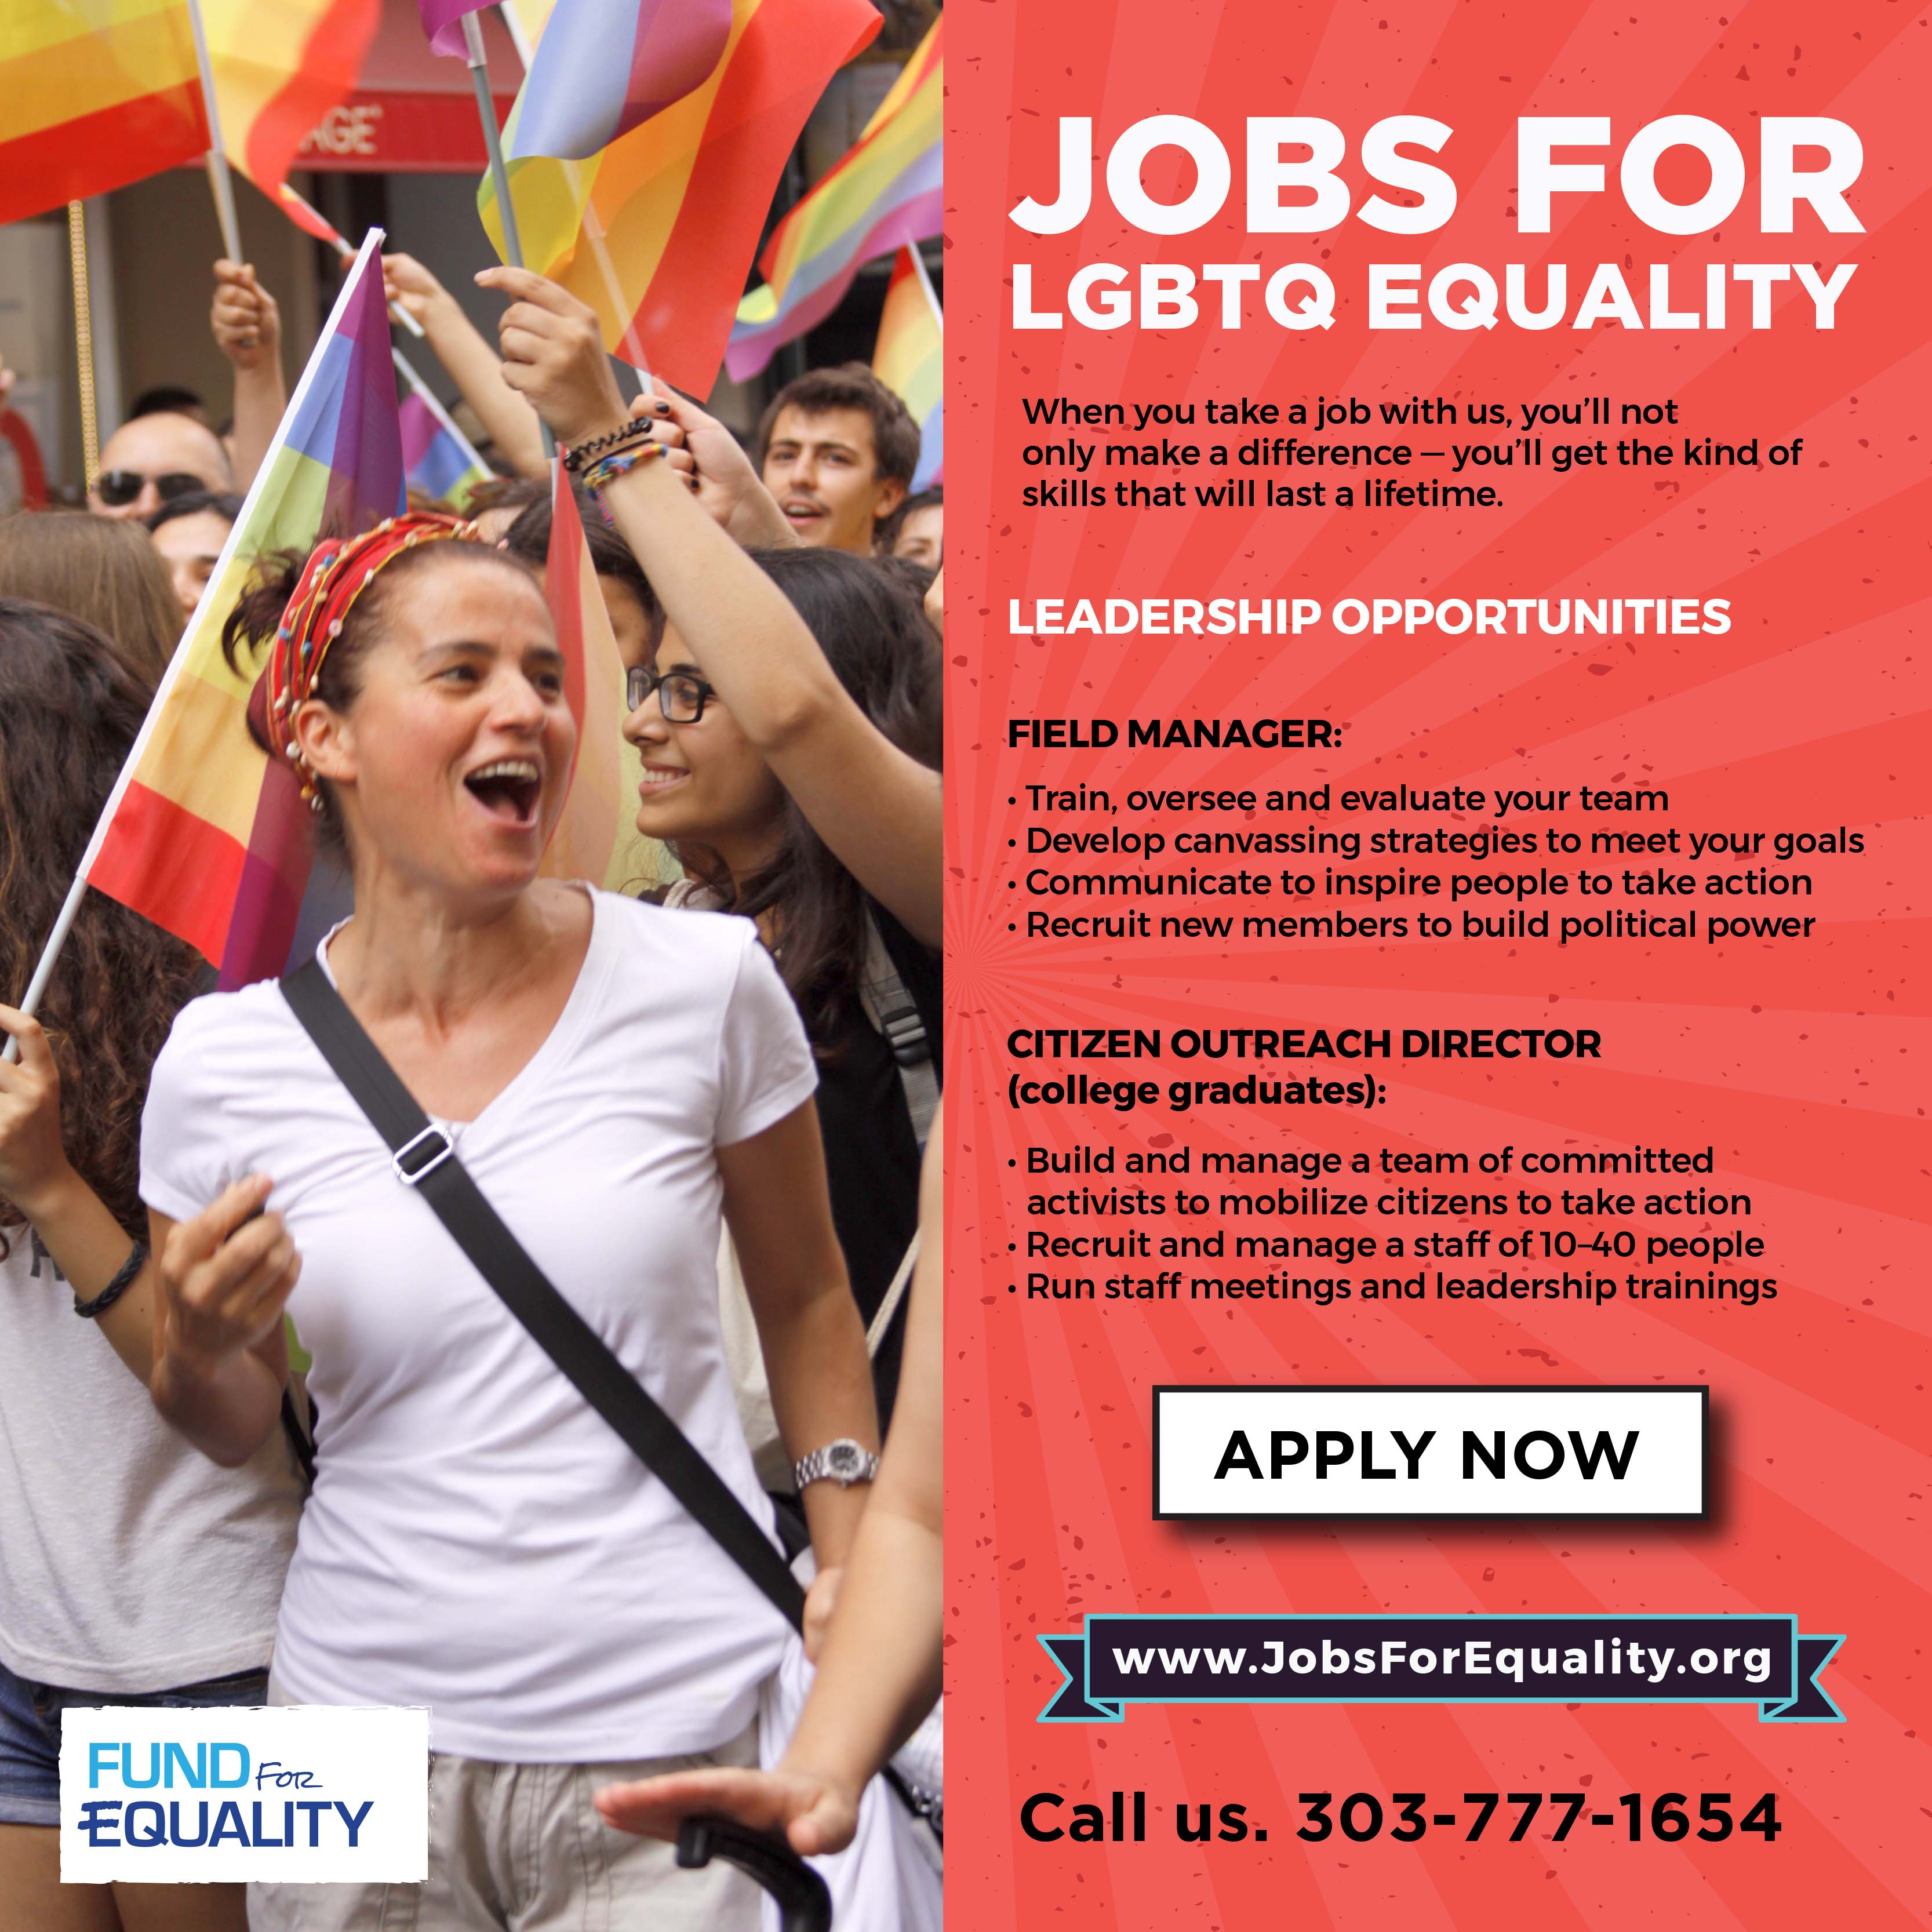 Fund for Equality is hiring people to work for LGBTQ equality. Apply for a job today.